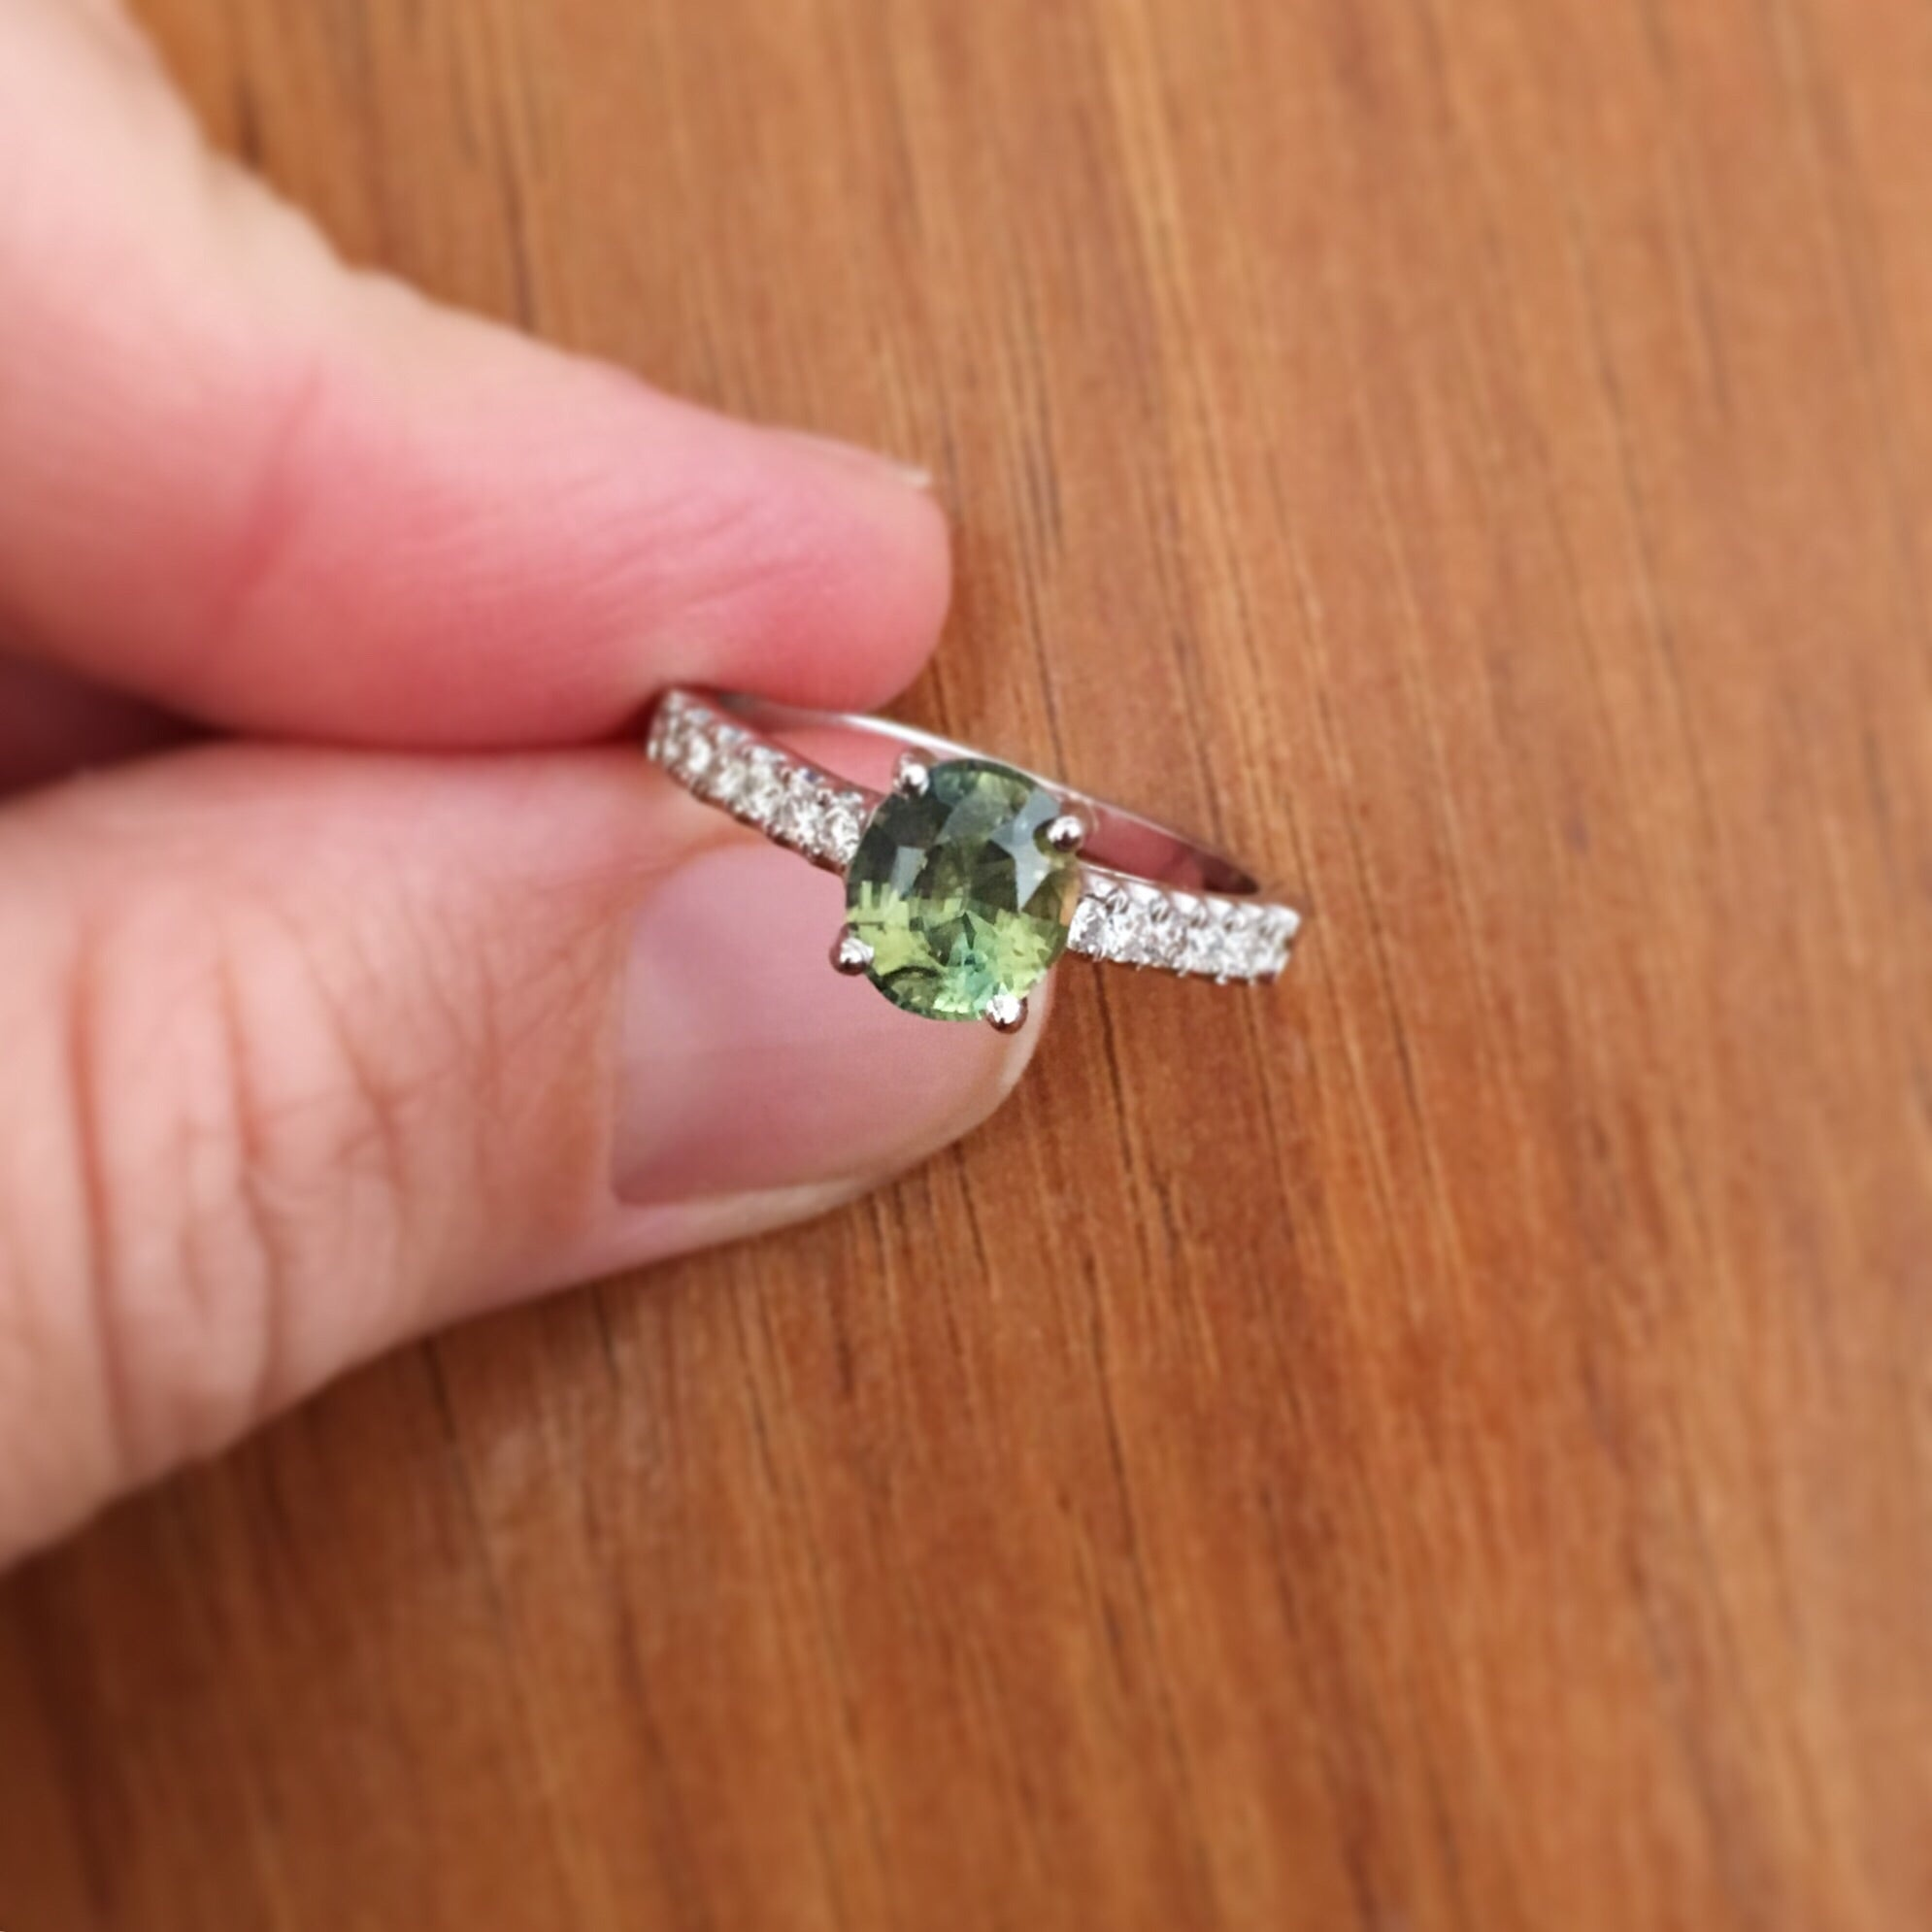 Oval jungle green sapphire held by four prongs with melee